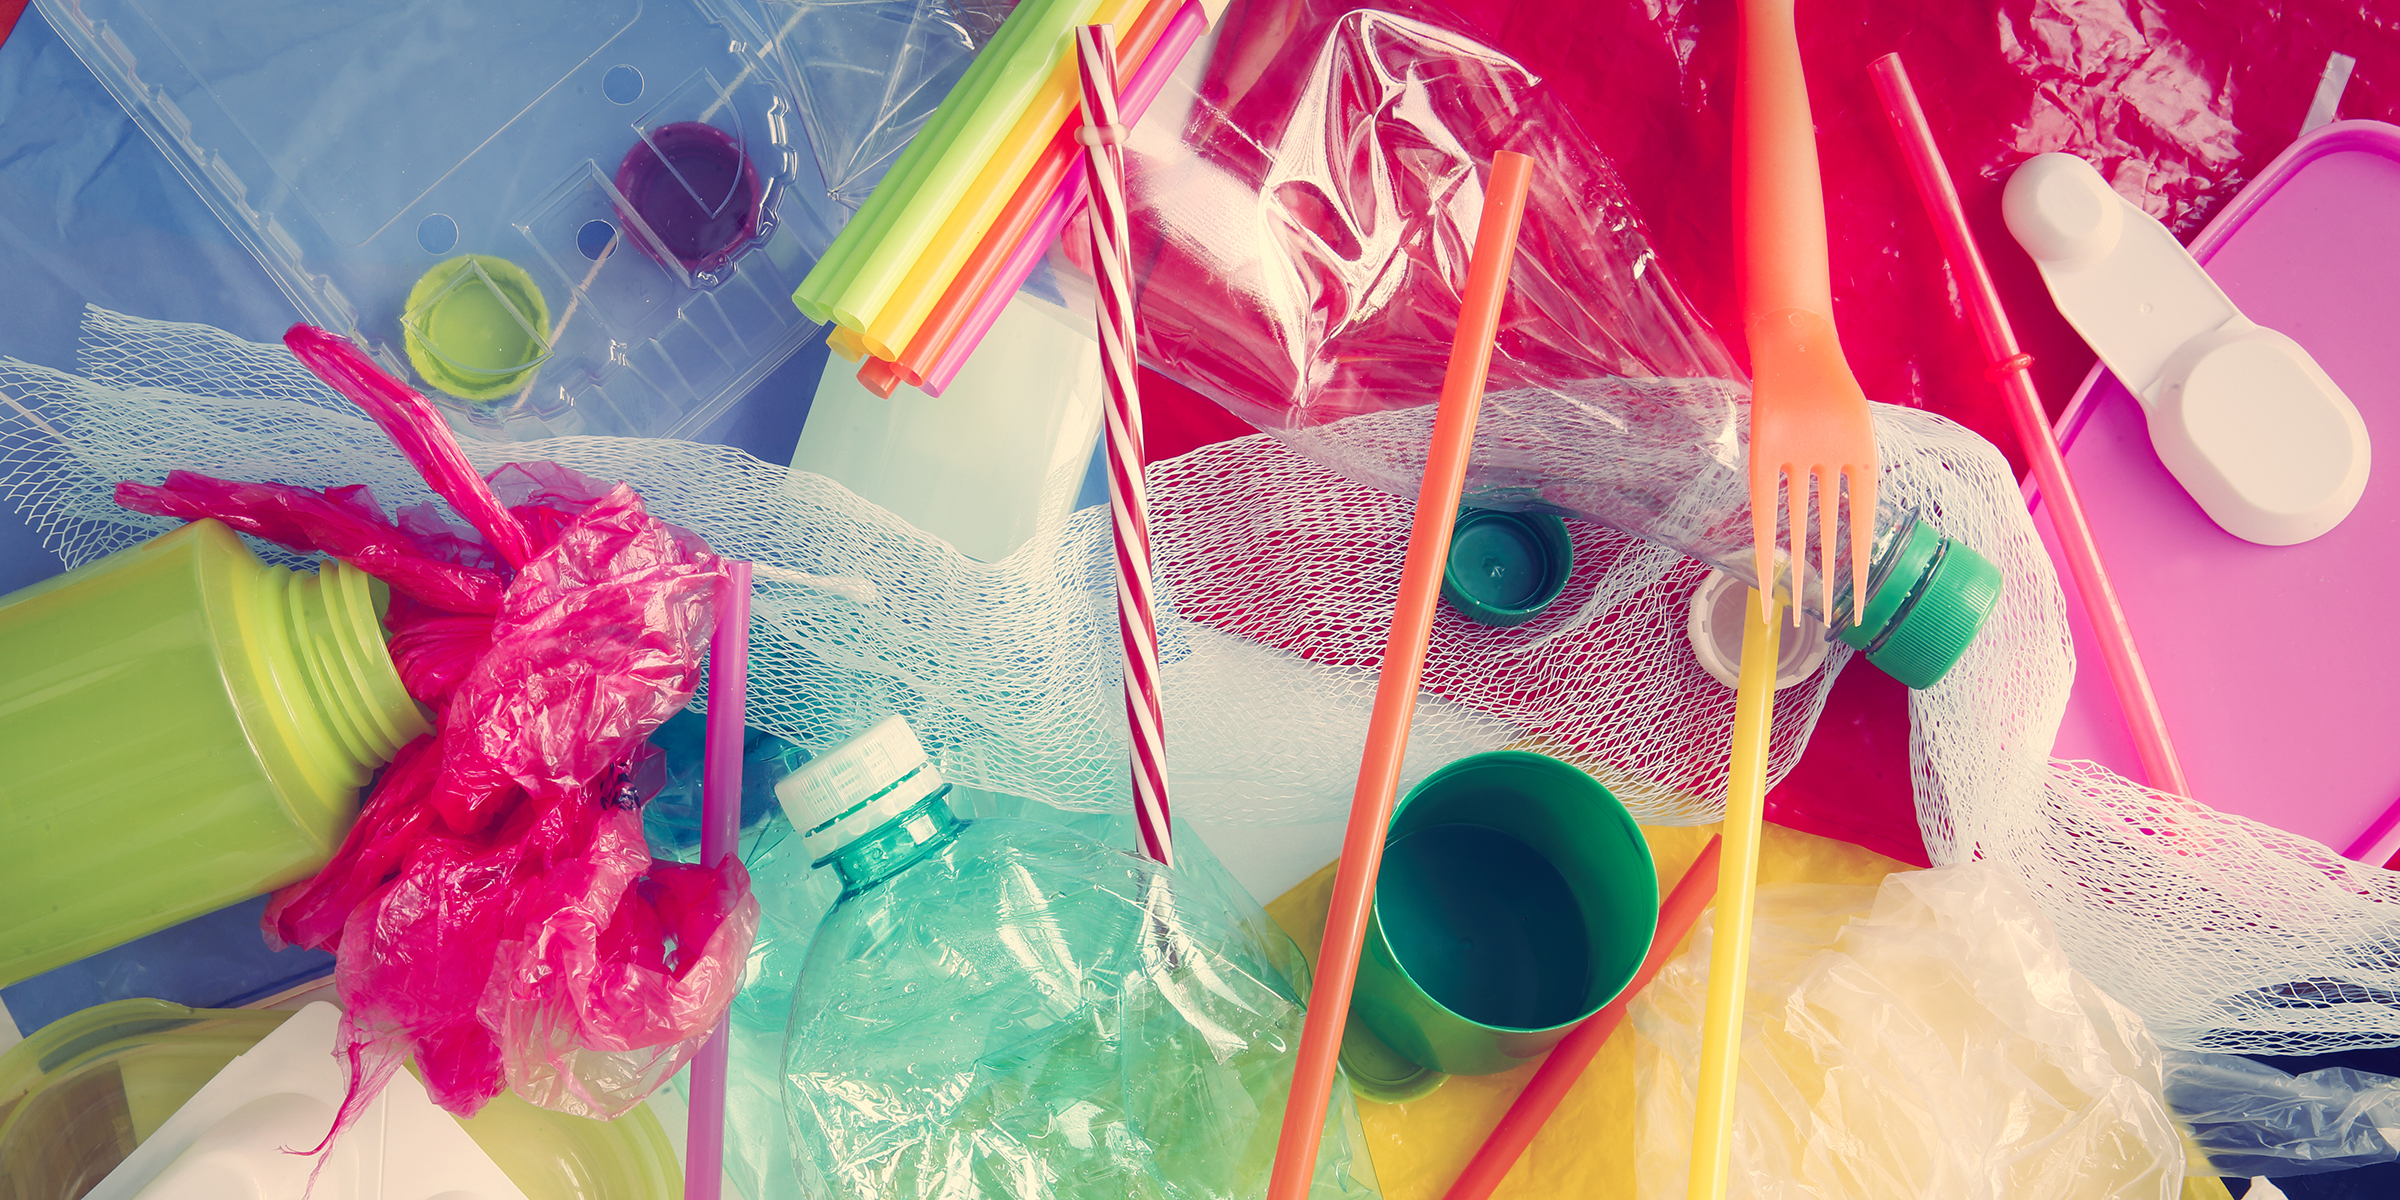 Are you a plastic offender? Here's how to use less